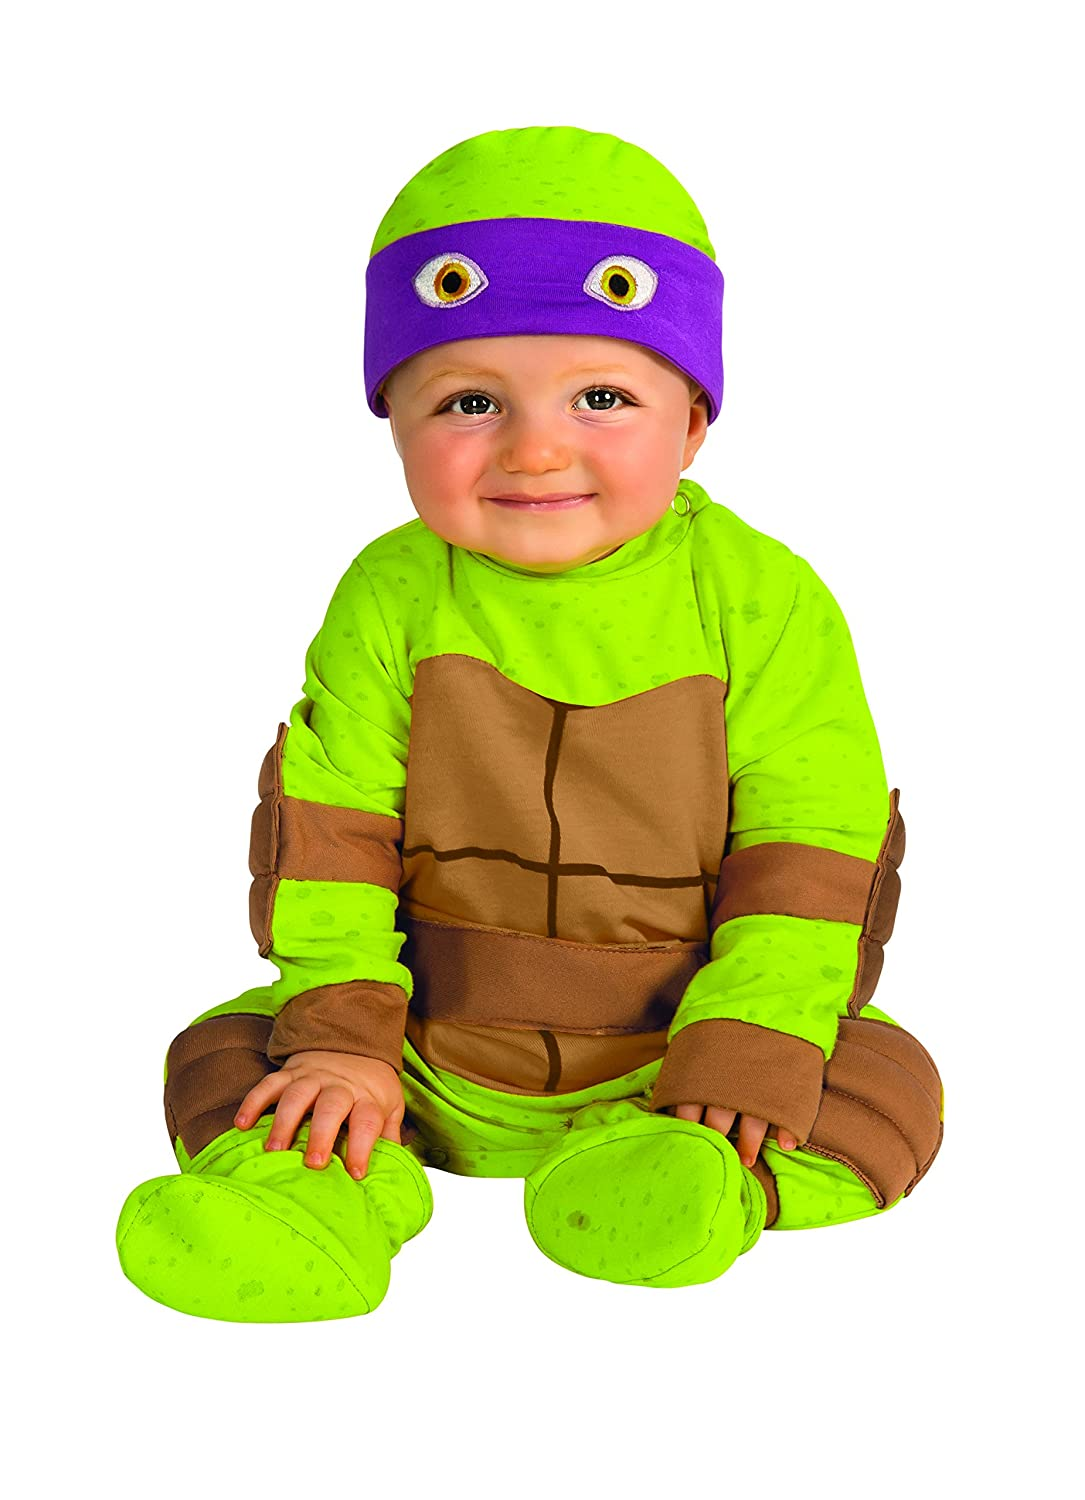 Amazon.com Rubieu0027s Costume Babyu0027s Teenage Mutant Ninja Turtles Animated Series Baby Costume Clothing  sc 1 st  Amazon.com : 0 3 months halloween costumes  - Germanpascual.Com